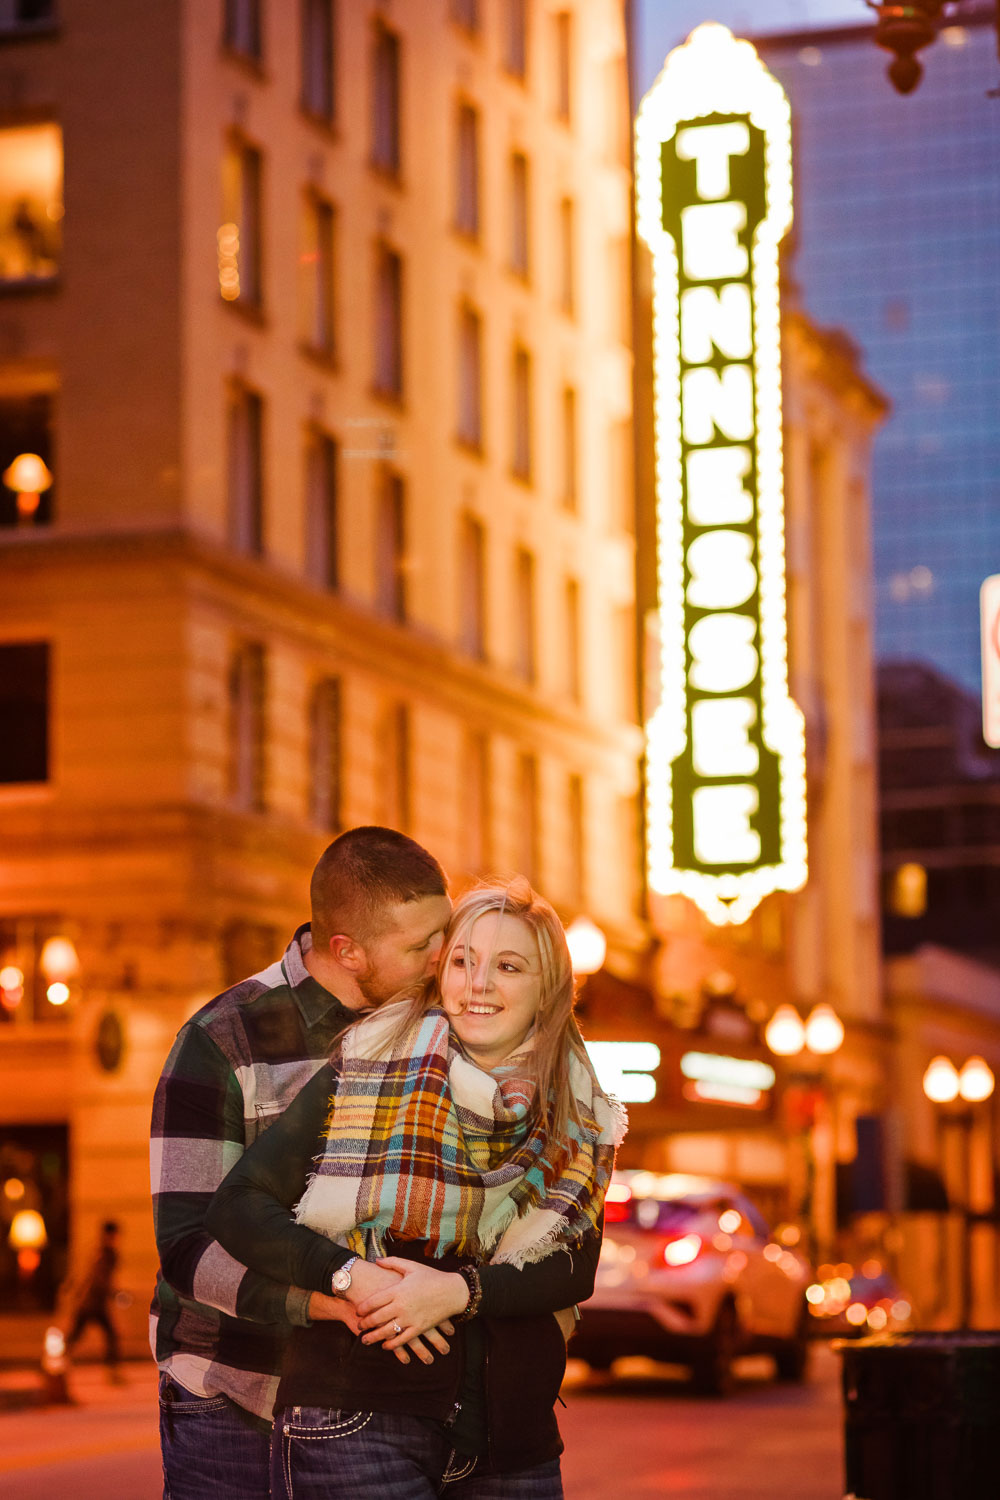 guy and girl in a happy hug on Gay ST in front of the Tennessee Theater sign